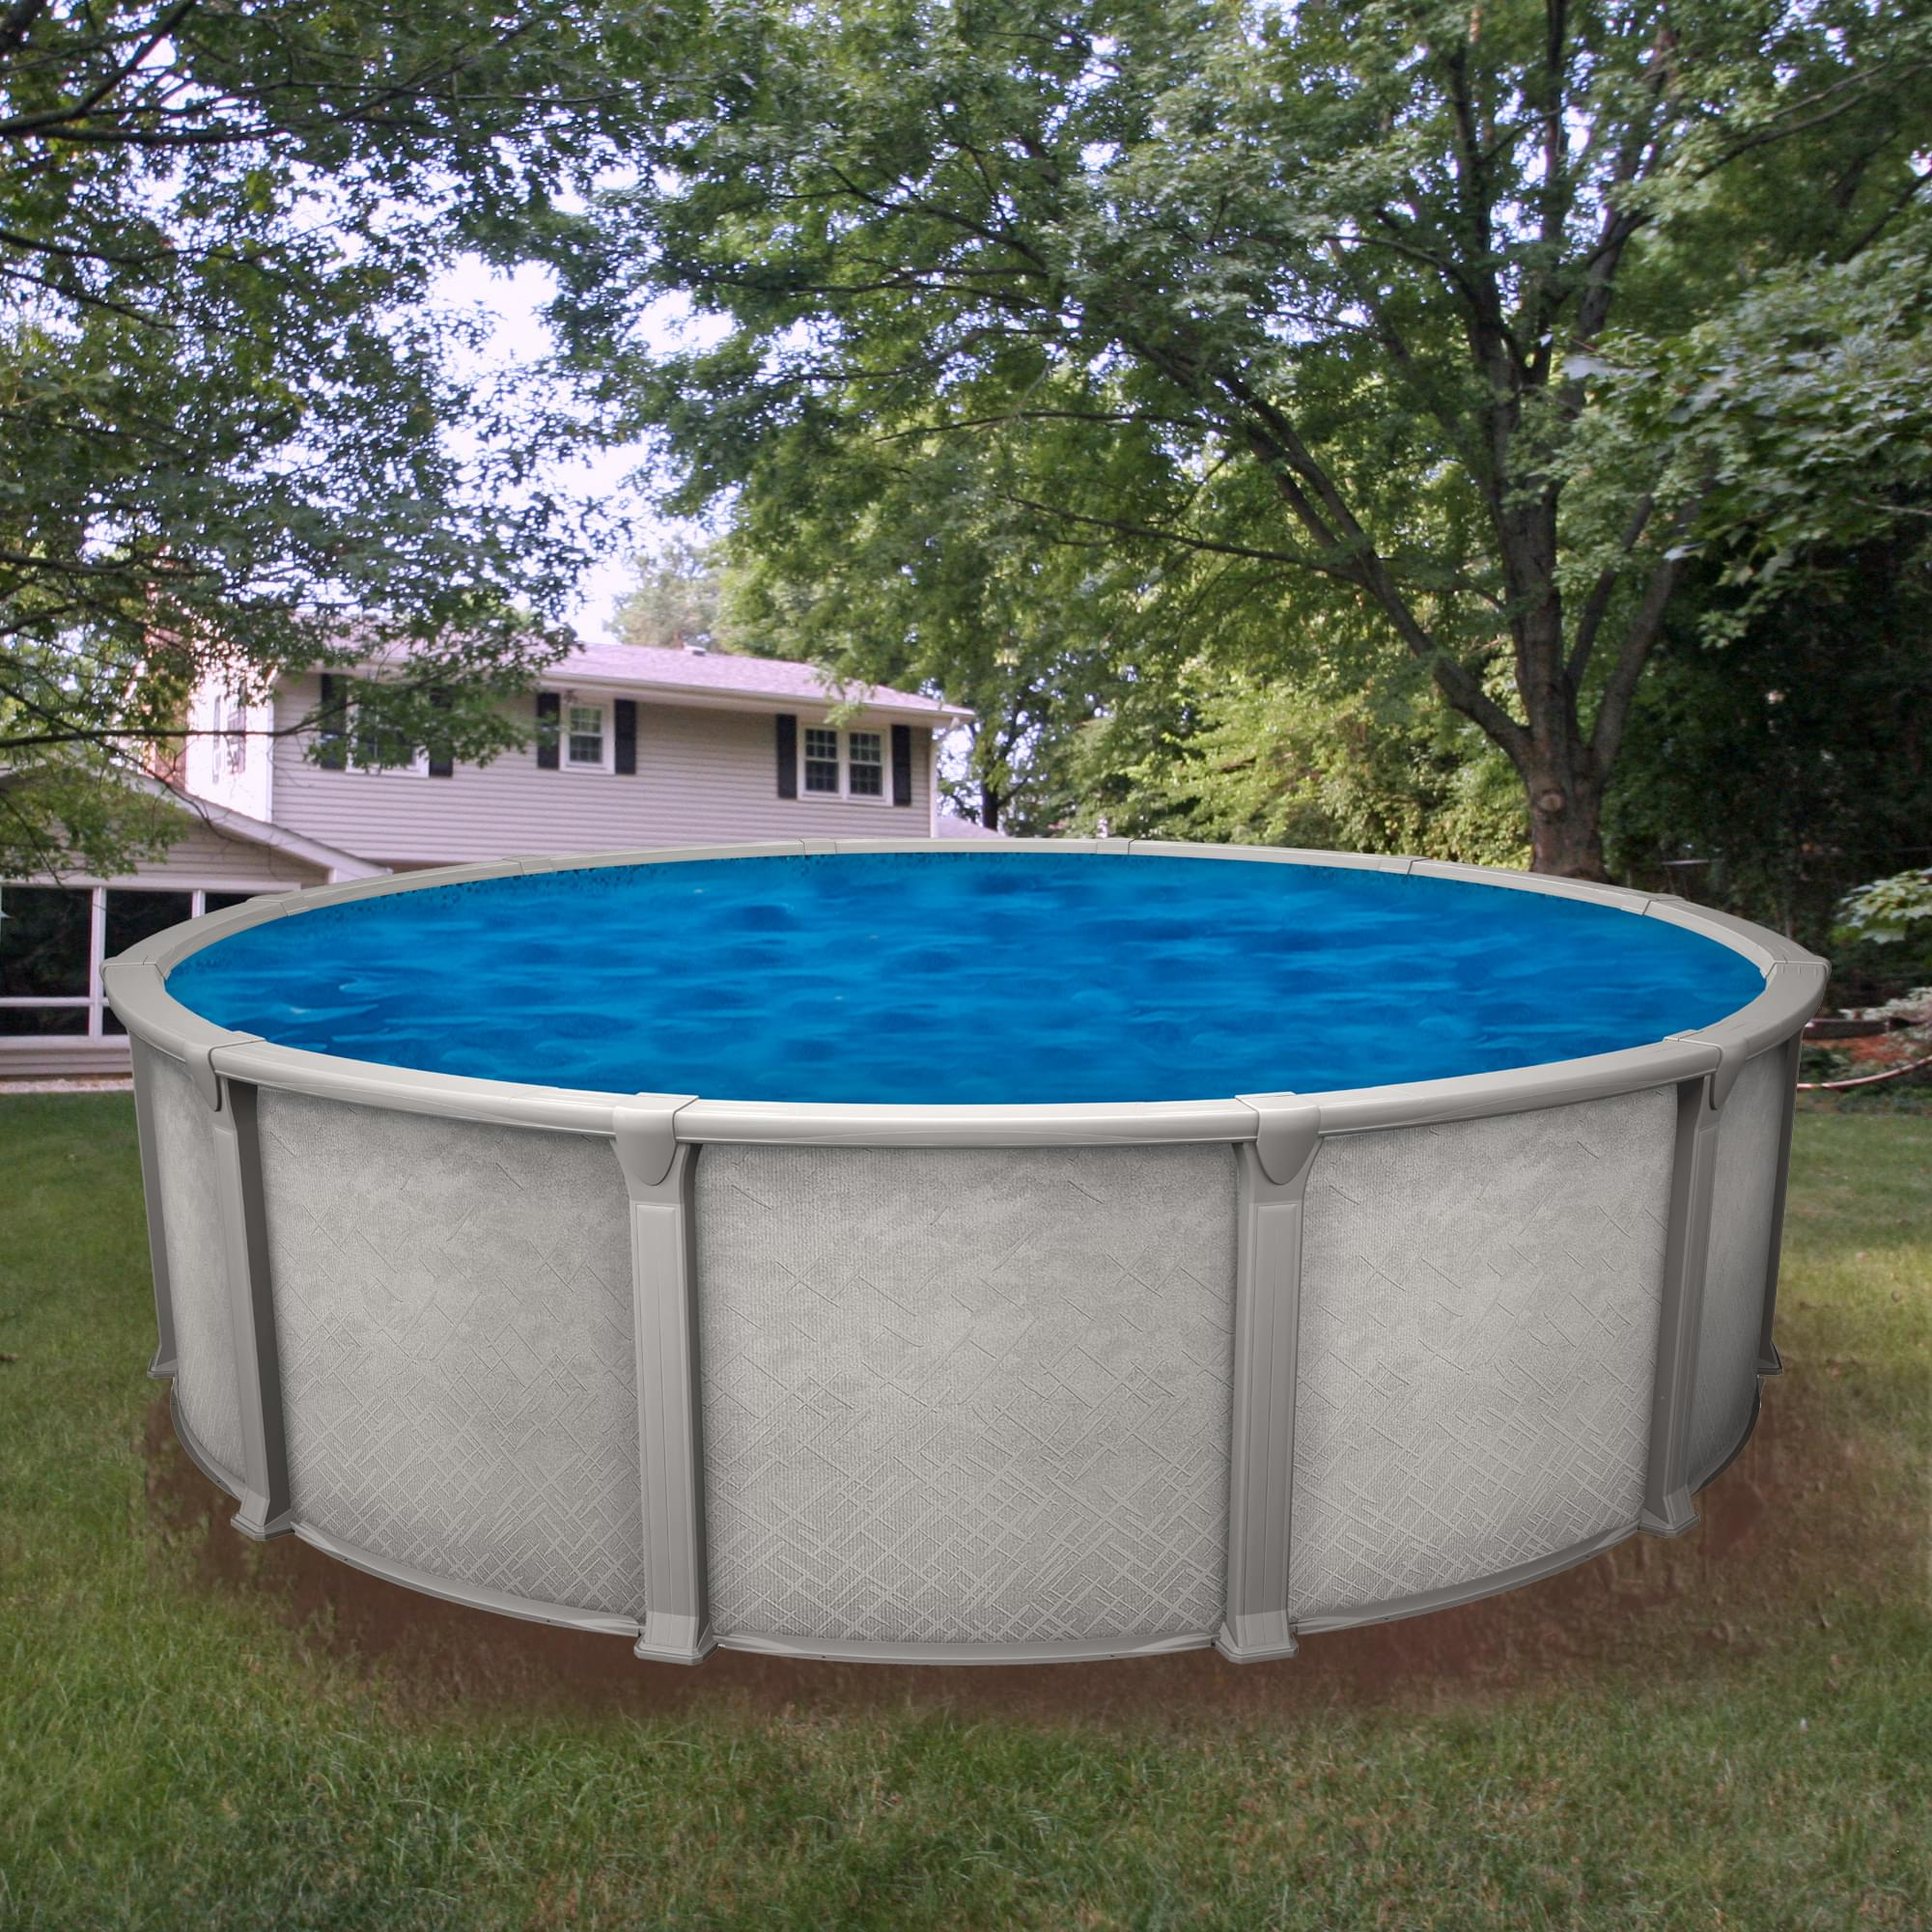 Galaxy 30 ft round above ground pool pool supplies canada galaxy 30 ft round above ground pool solutioingenieria Image collections